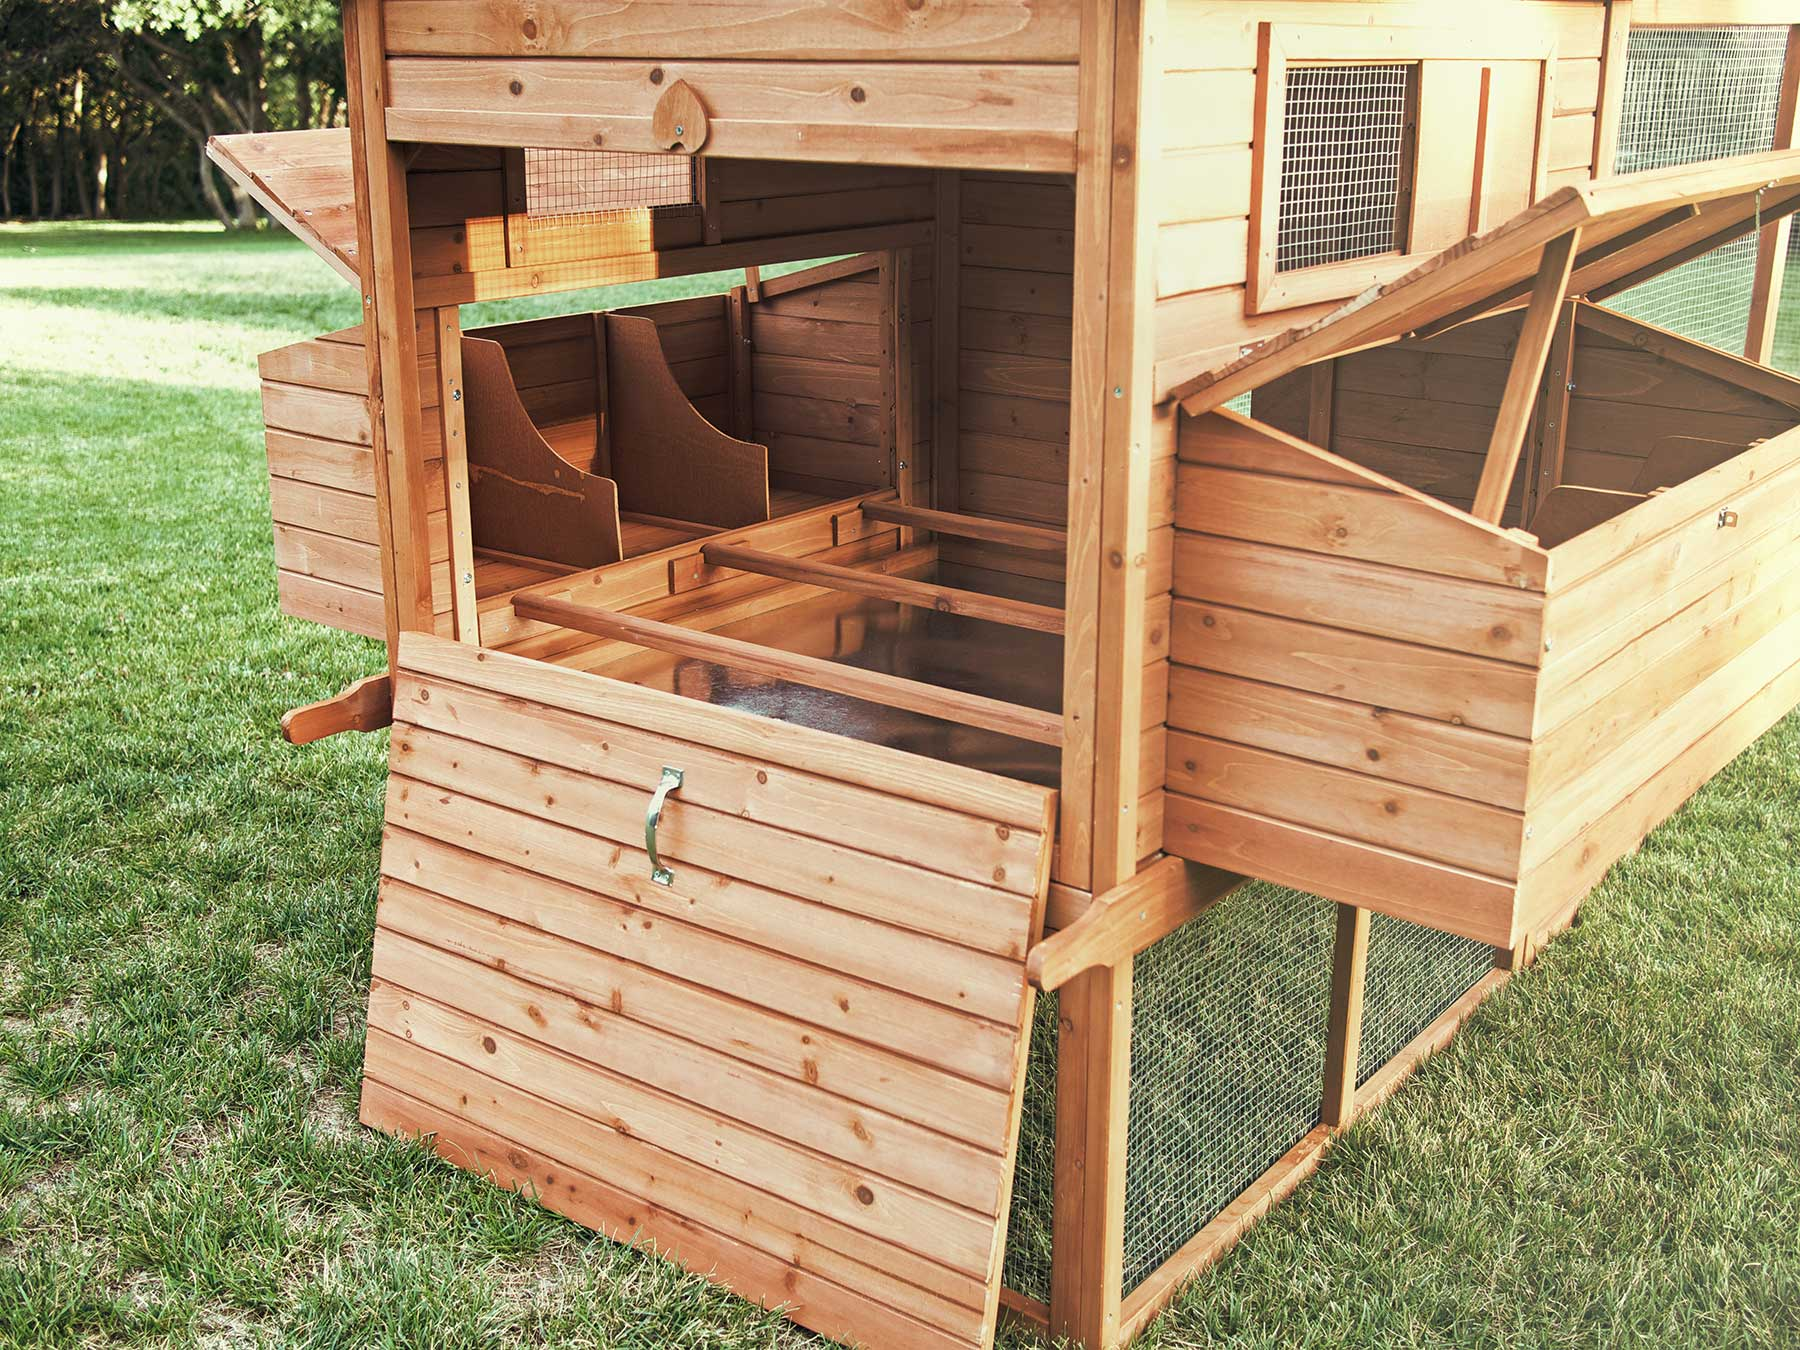 Ranch chicken coop chicken saloon for Chicken coop size for 6 chickens